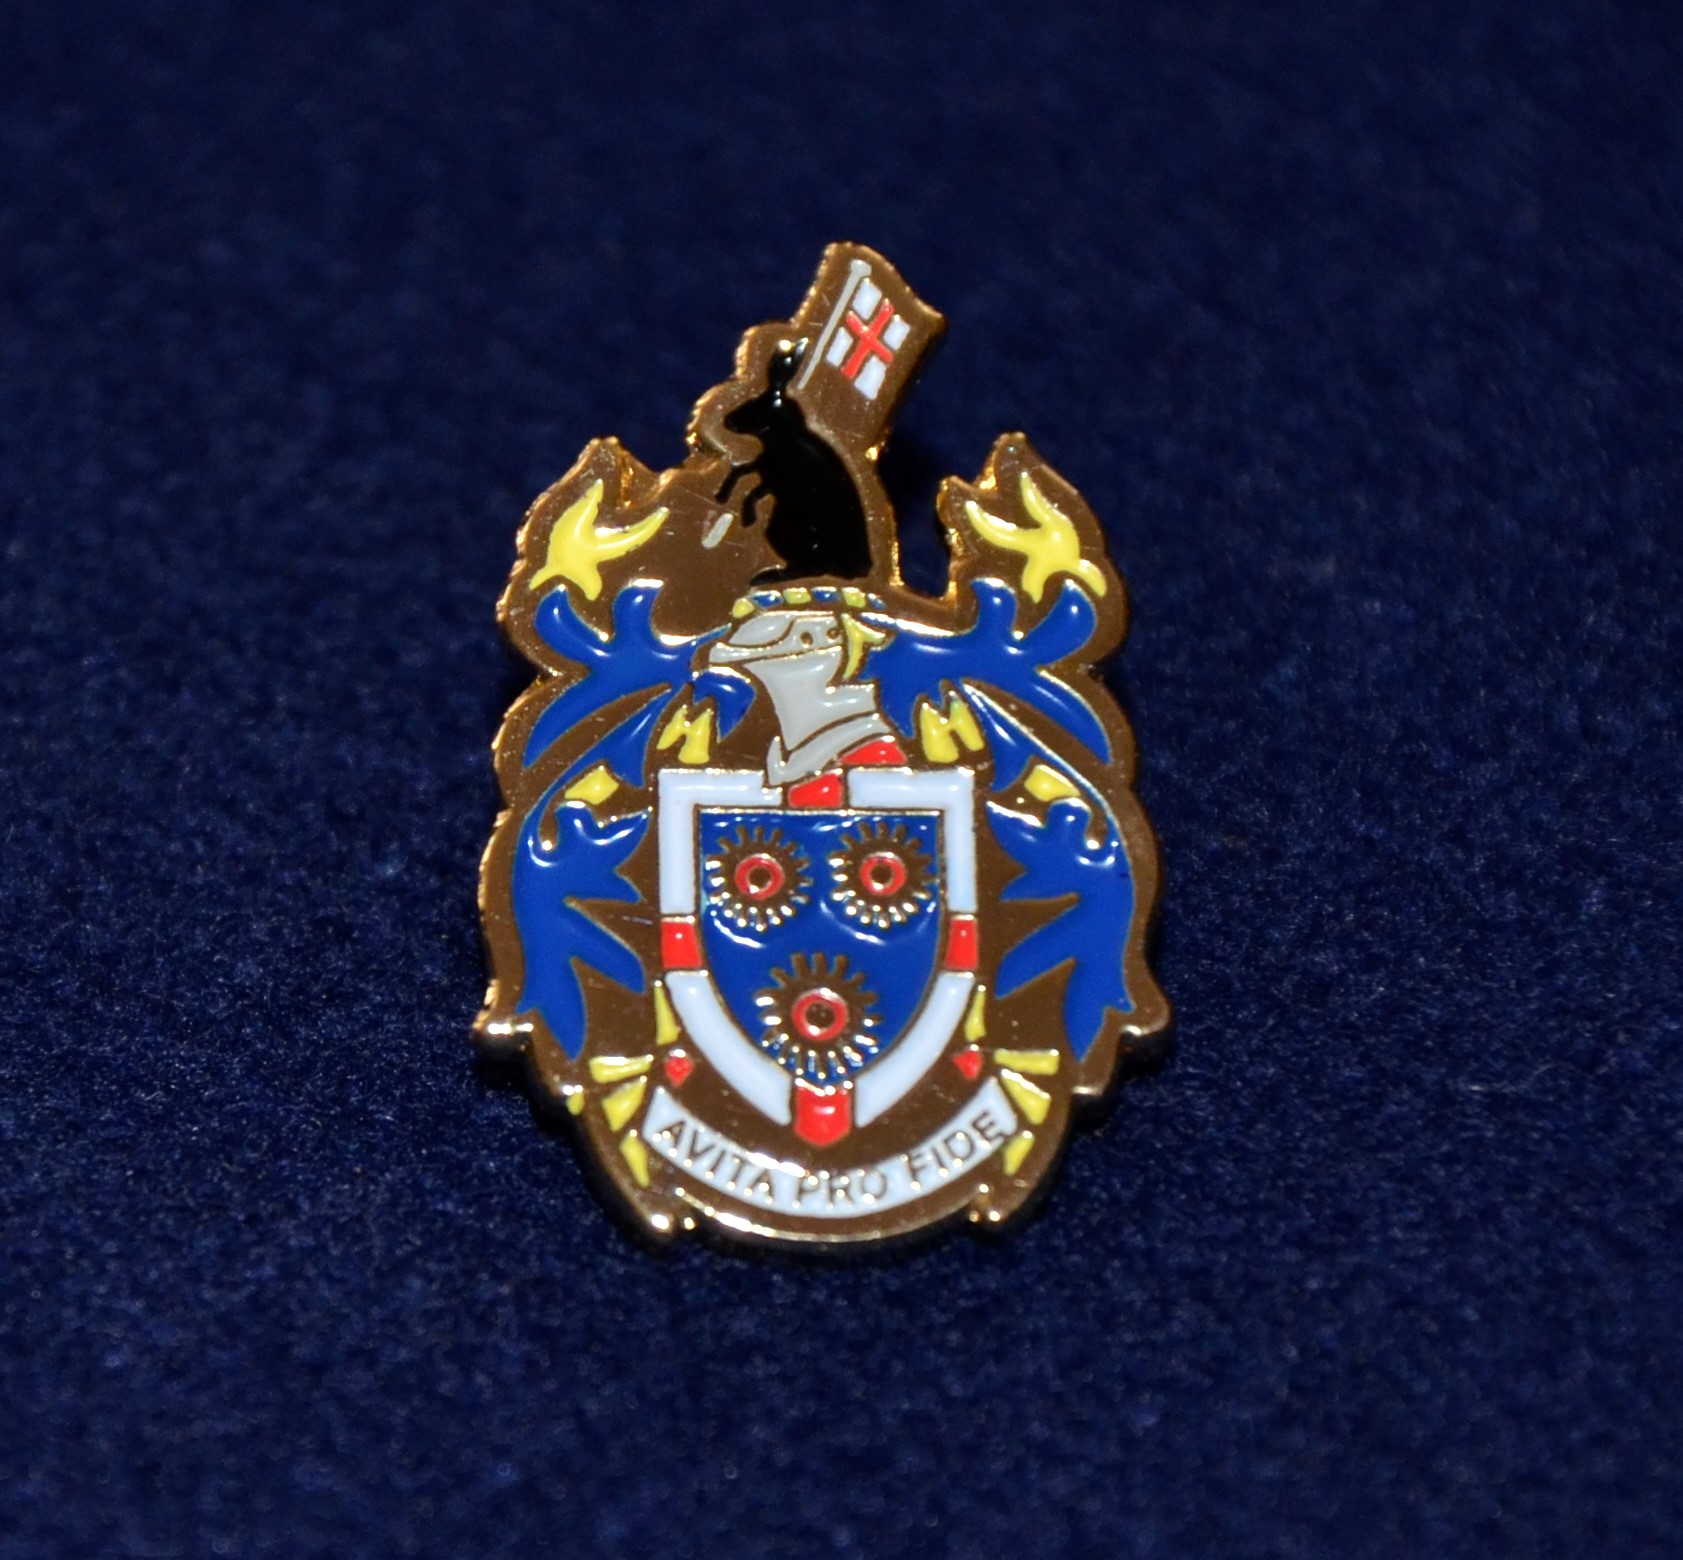 School Crest lapel pin